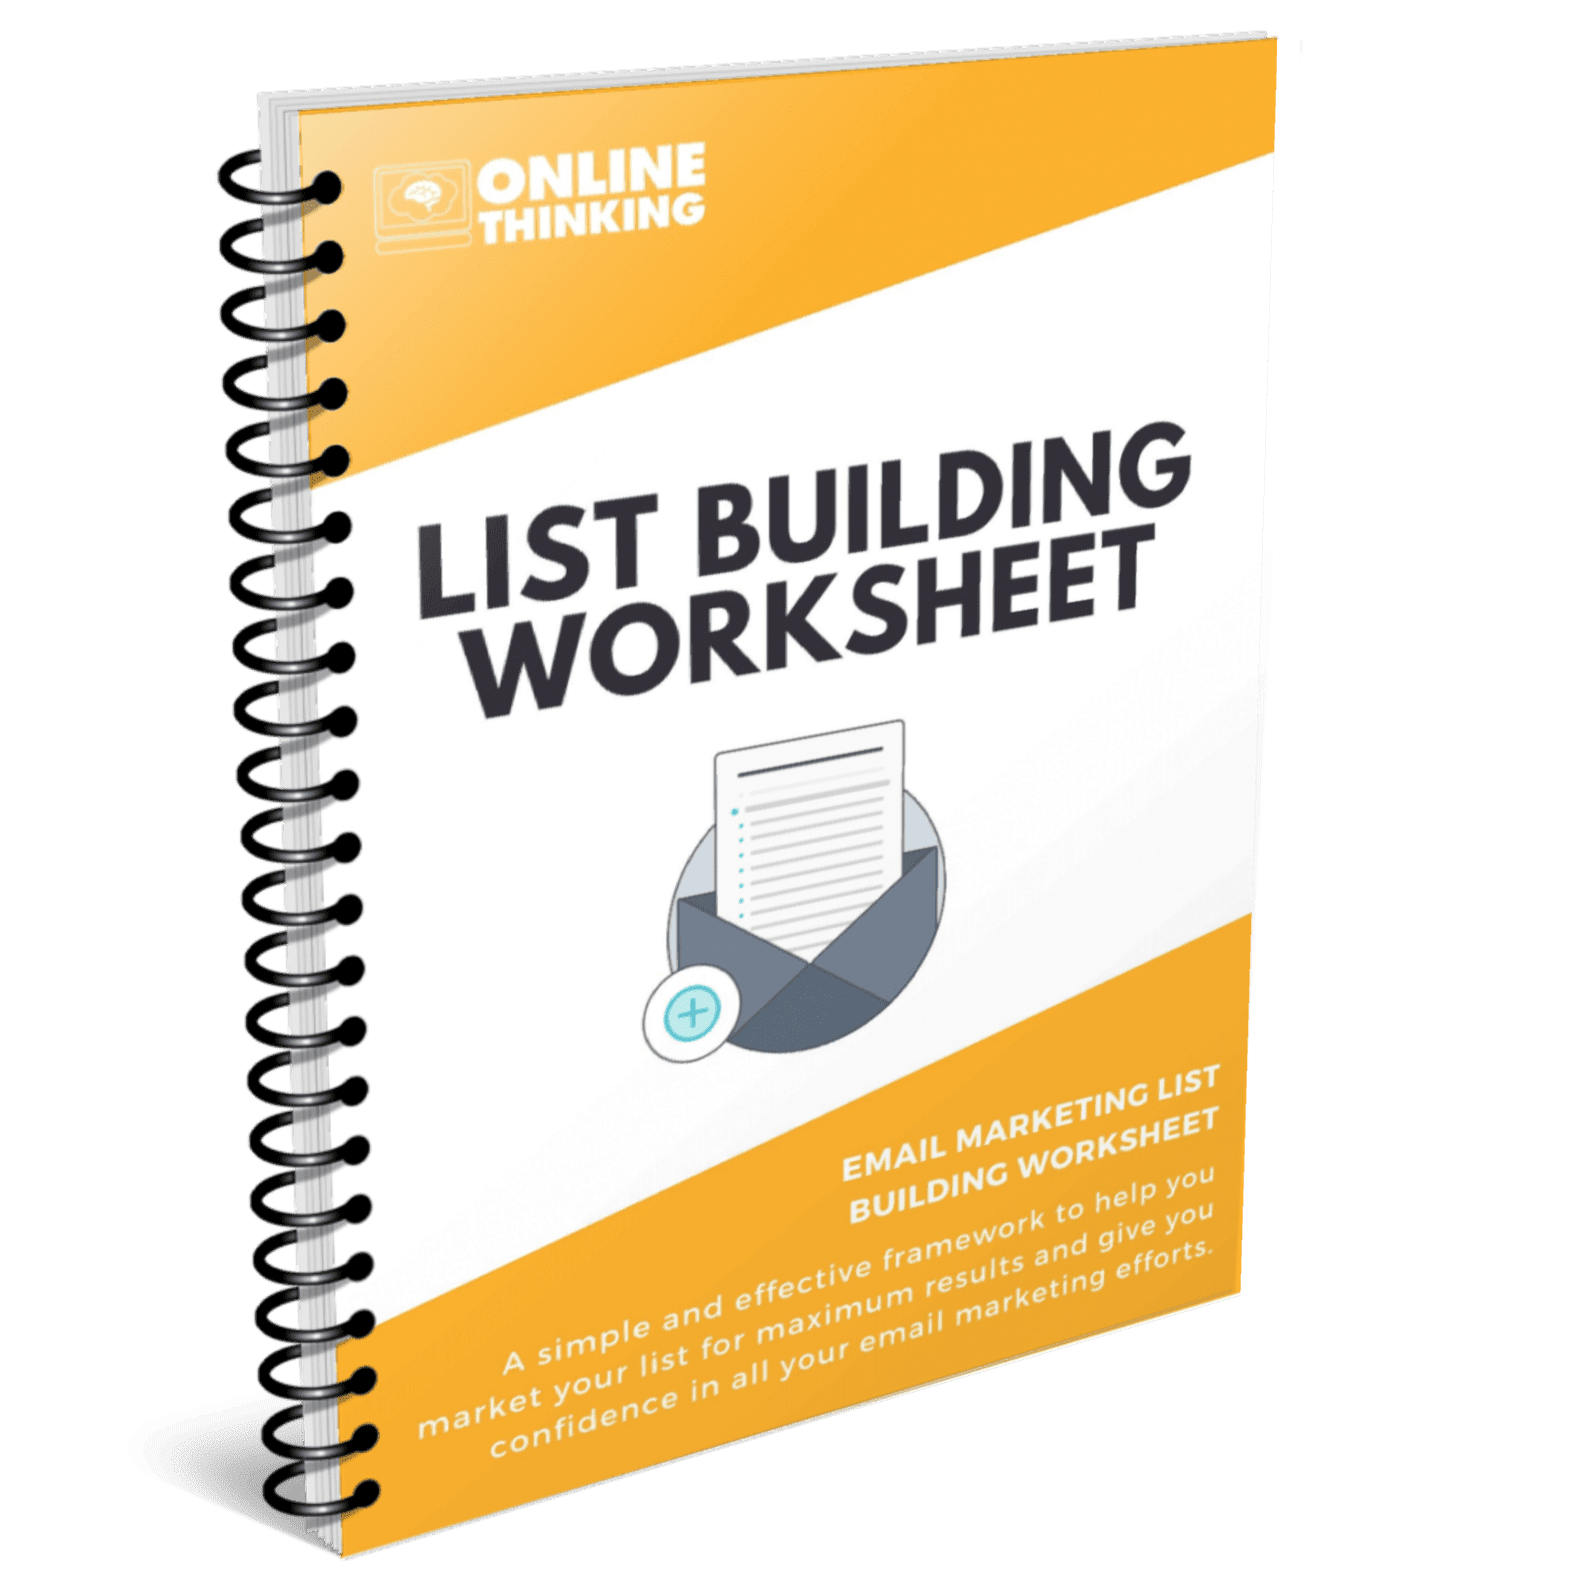 Email Marketing List Building Worksheet